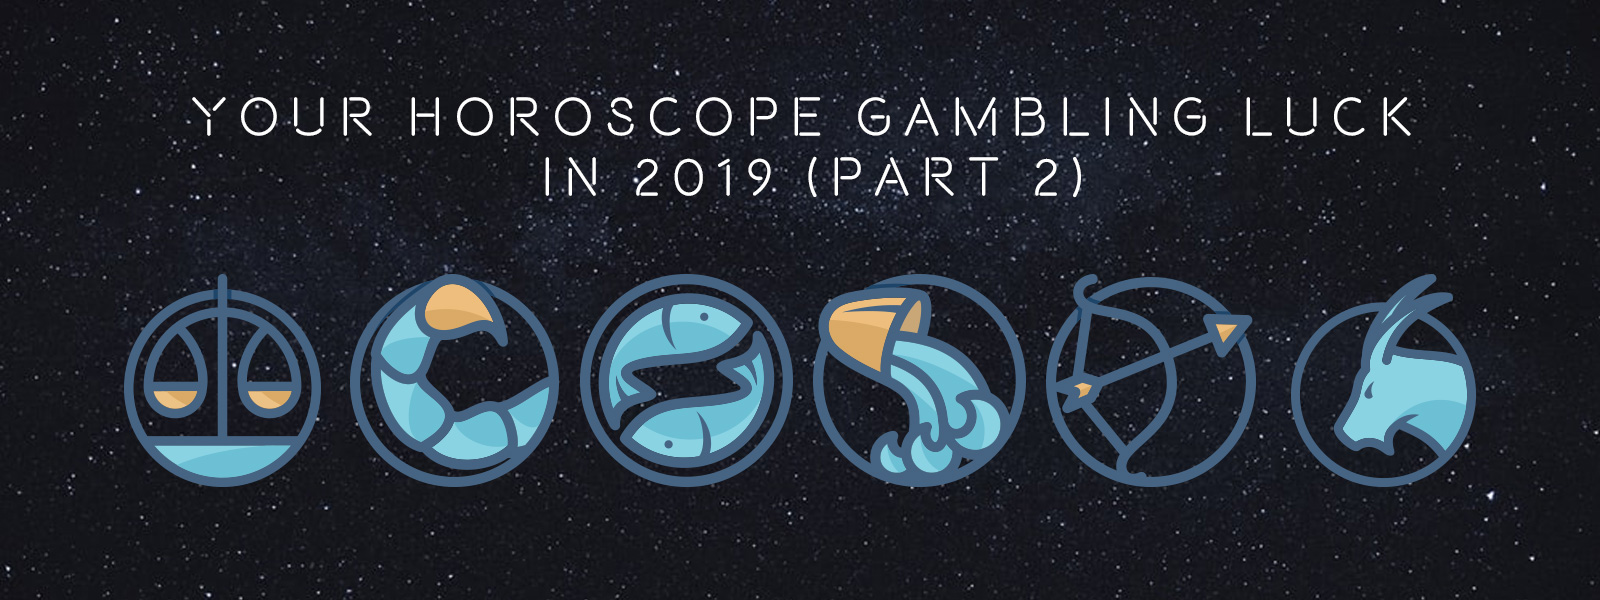 Blog Featured Image (Your Horoscope Gambling Luck in 2019 (Part 2) Blog Featured